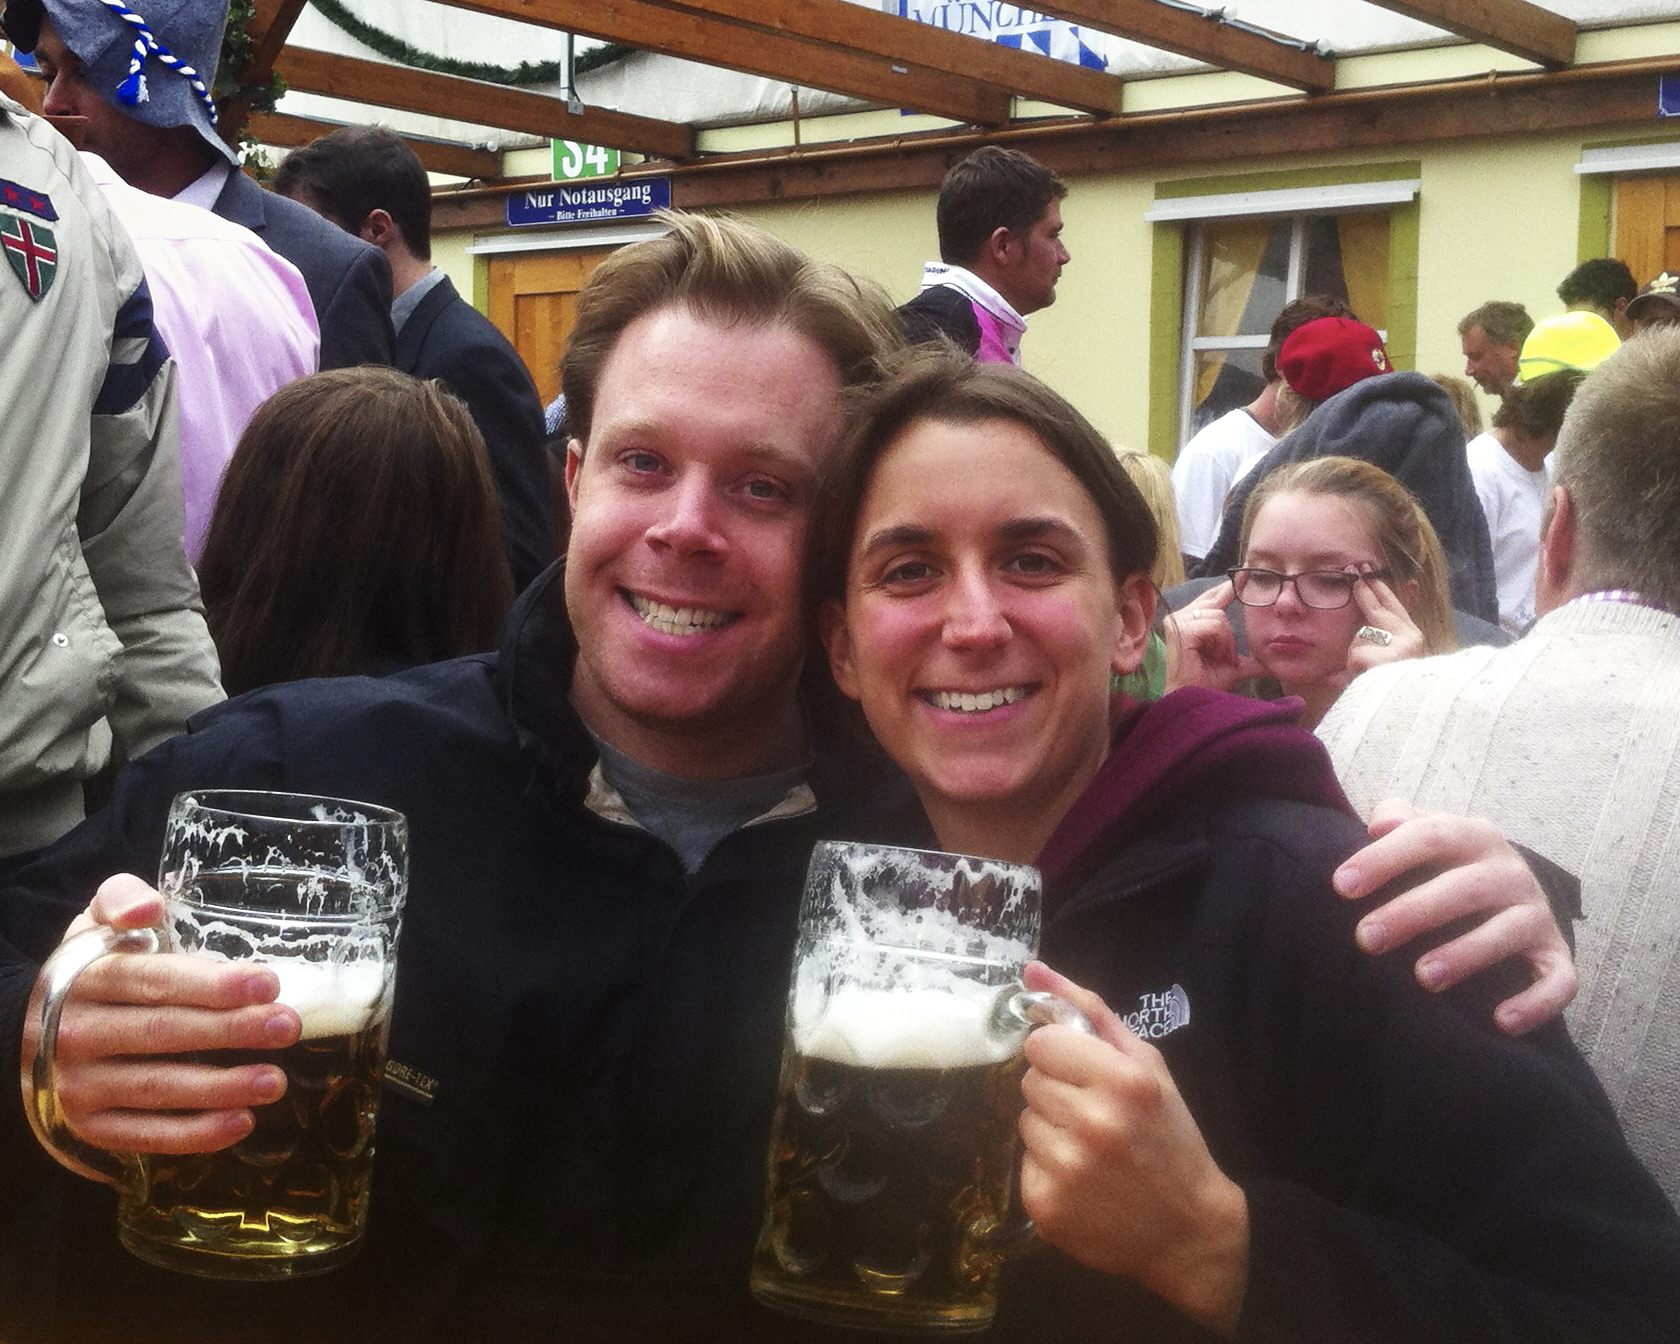 My other half & I at (the real) Oktoberfest. Don't ask which tent, don't remember; keep in mind those are one liter steins of beer.